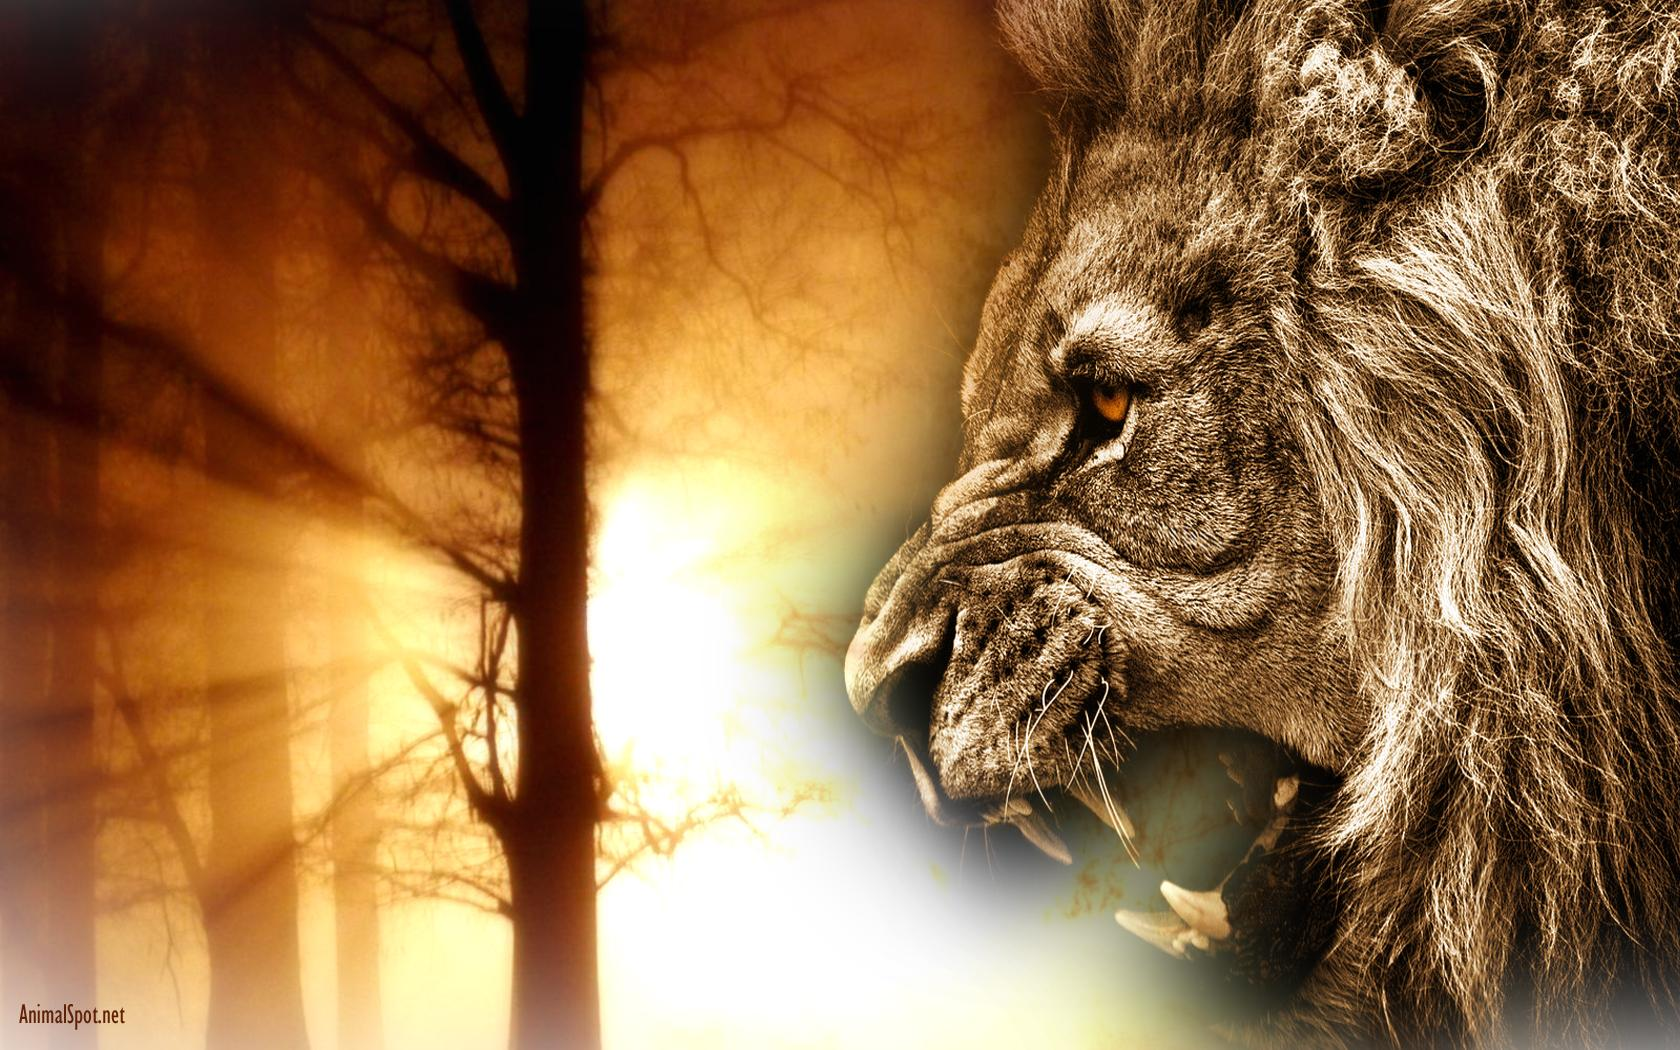 Angry Lion Hd Wallpaper - Angry Lion Wallpaper Full Hd , HD Wallpaper & Backgrounds